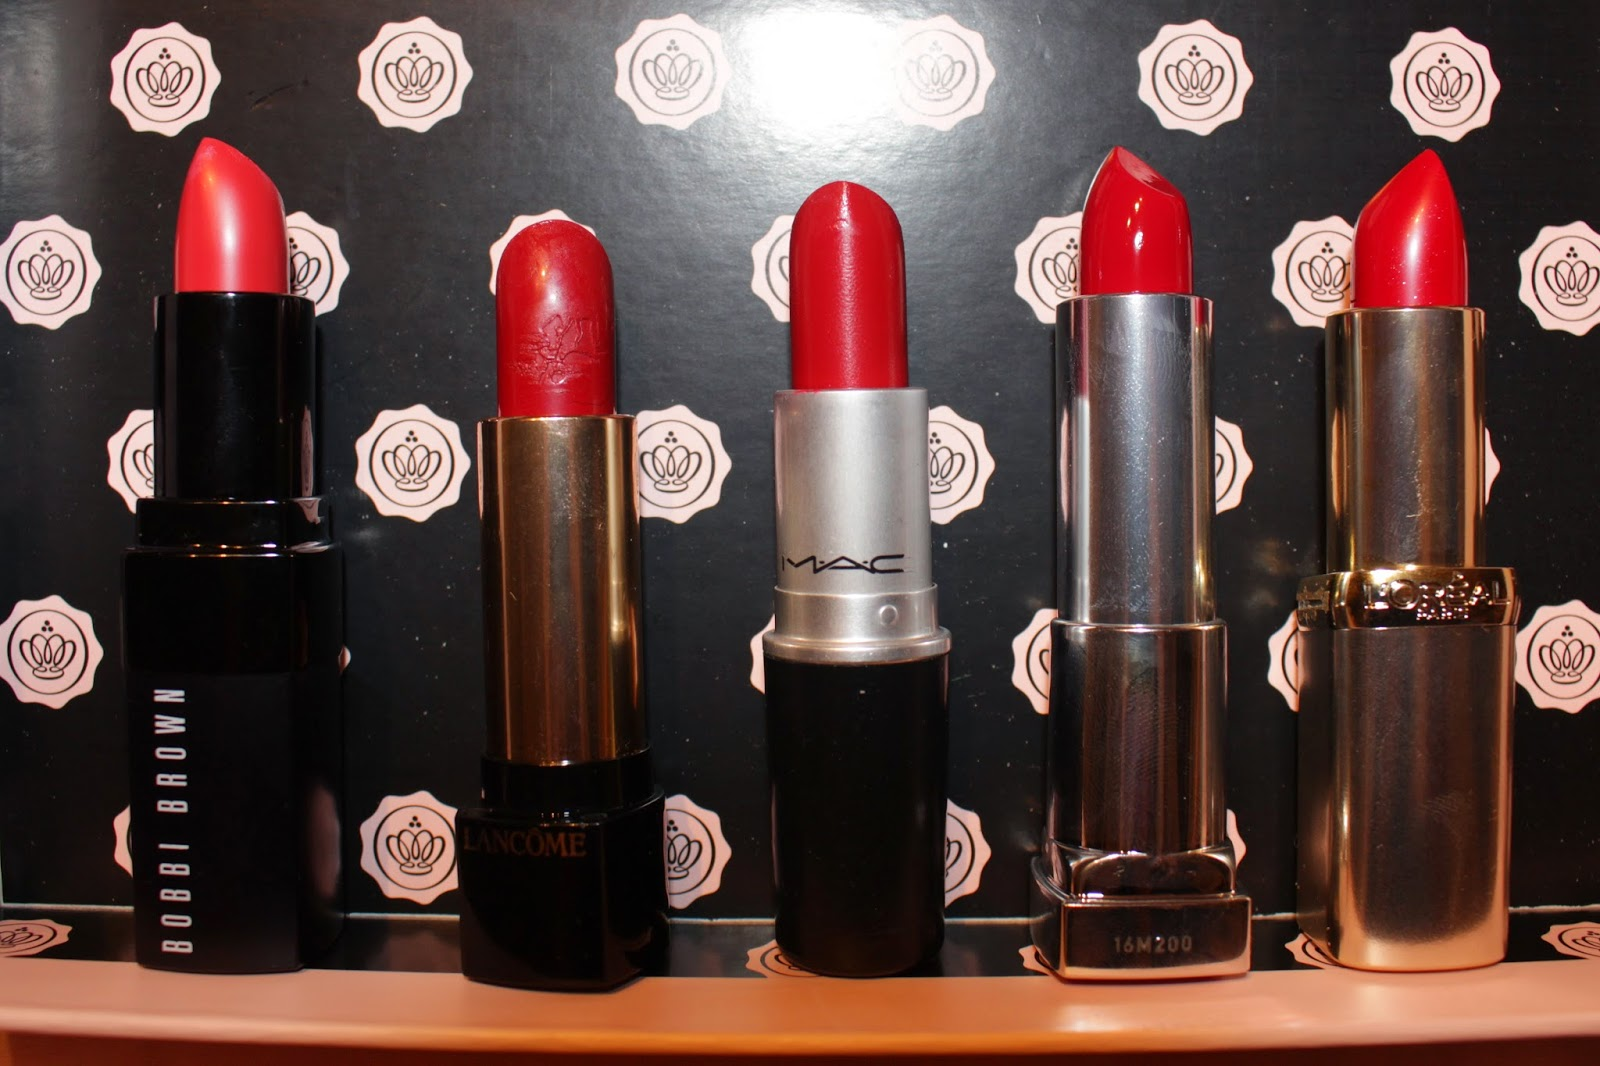 With Flash: L to R: Bobbi Brown Rich Lip Colour in 42 - Watermelon, Lancôme L'Absolu Rouge in 173 - Preciosa, MAC Brave Red Cremesheen, Maybelline Colour Sensational in 547 - Pleasure Me Red, L'oreal in 297 - Red Passion